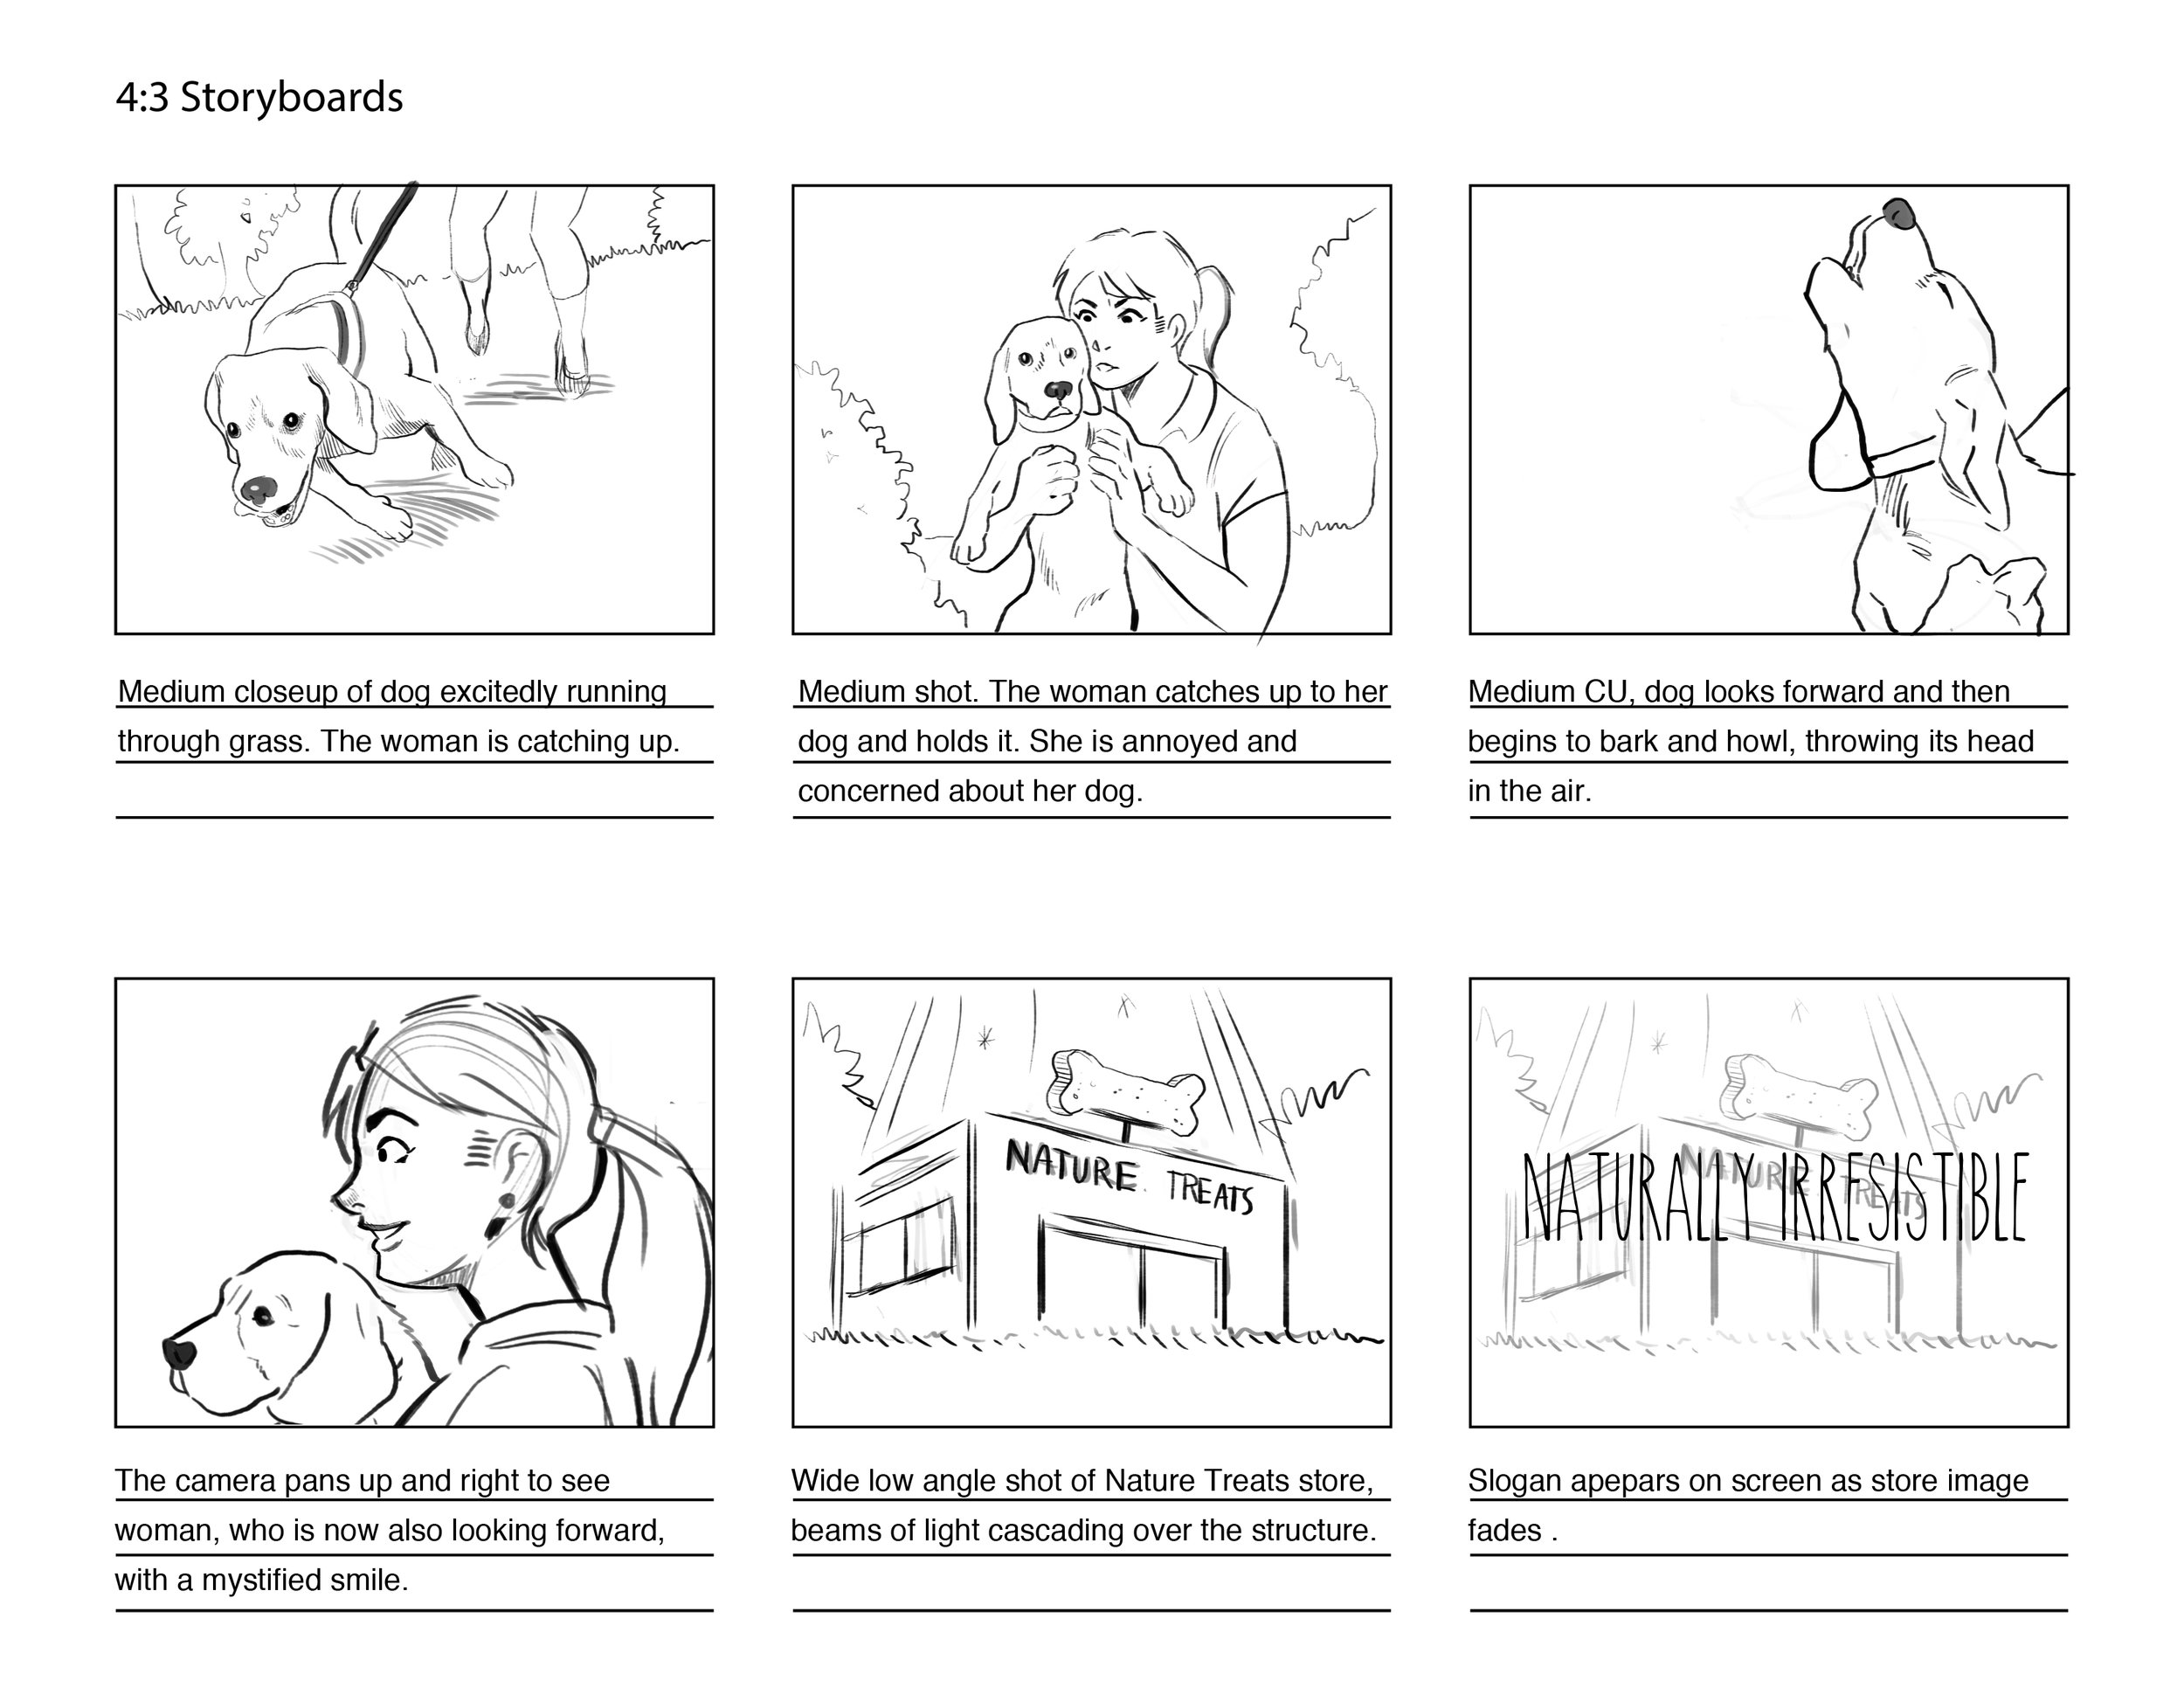 Storyboards for Dog treat commercial pitch.